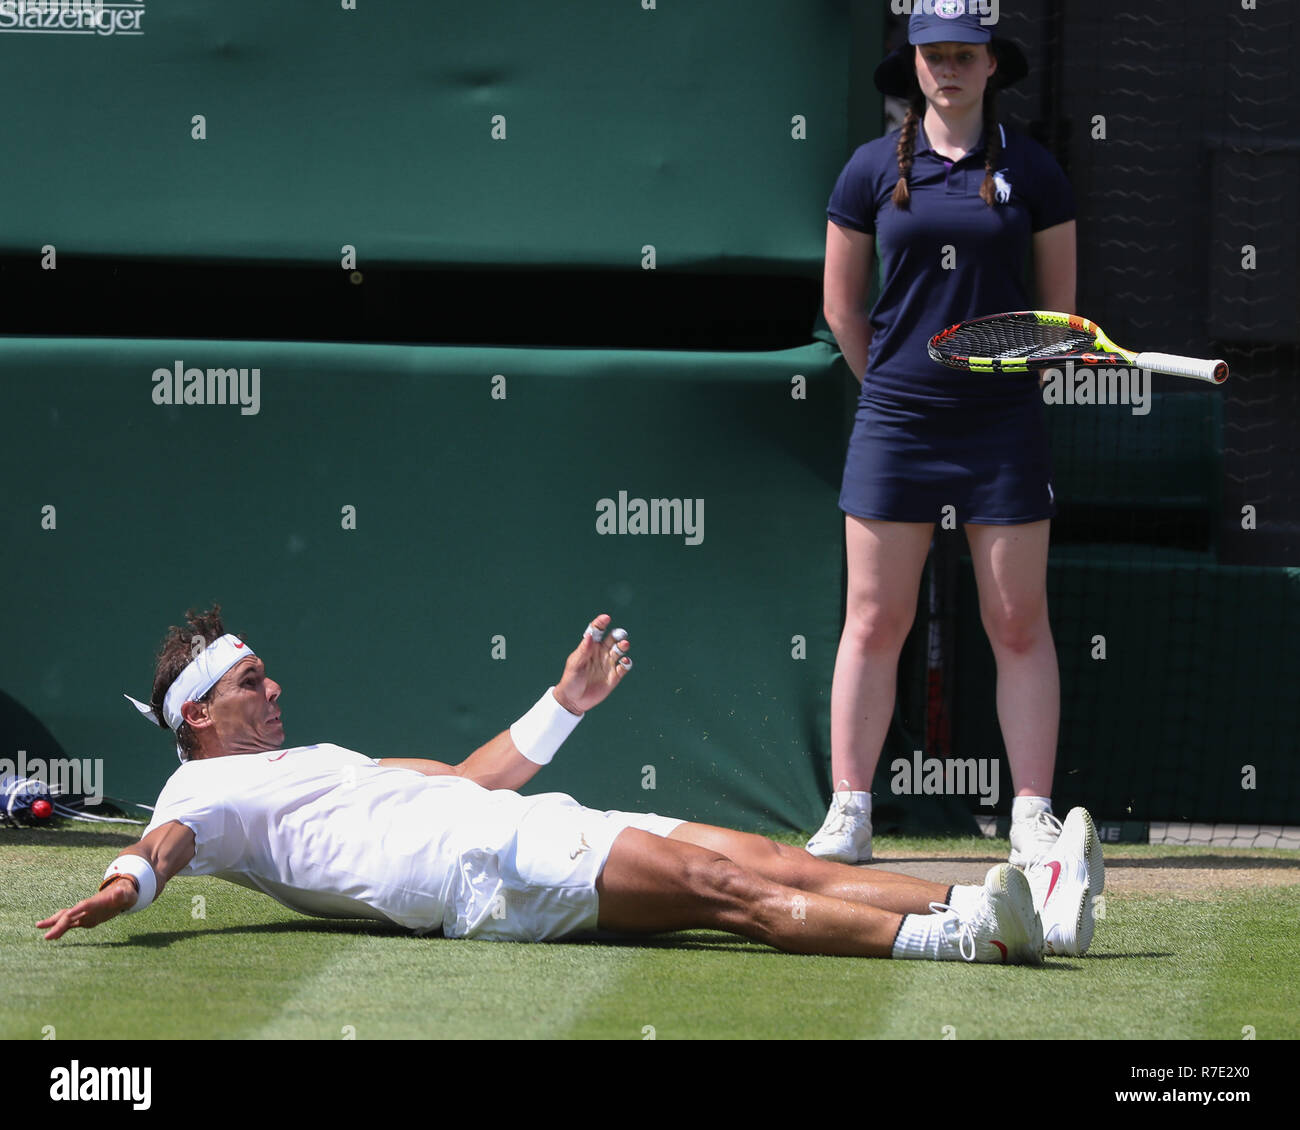 Spanish player Rafael Nadal falls to the ground, Wimbledon, London, United Kingdom. - Stock Image